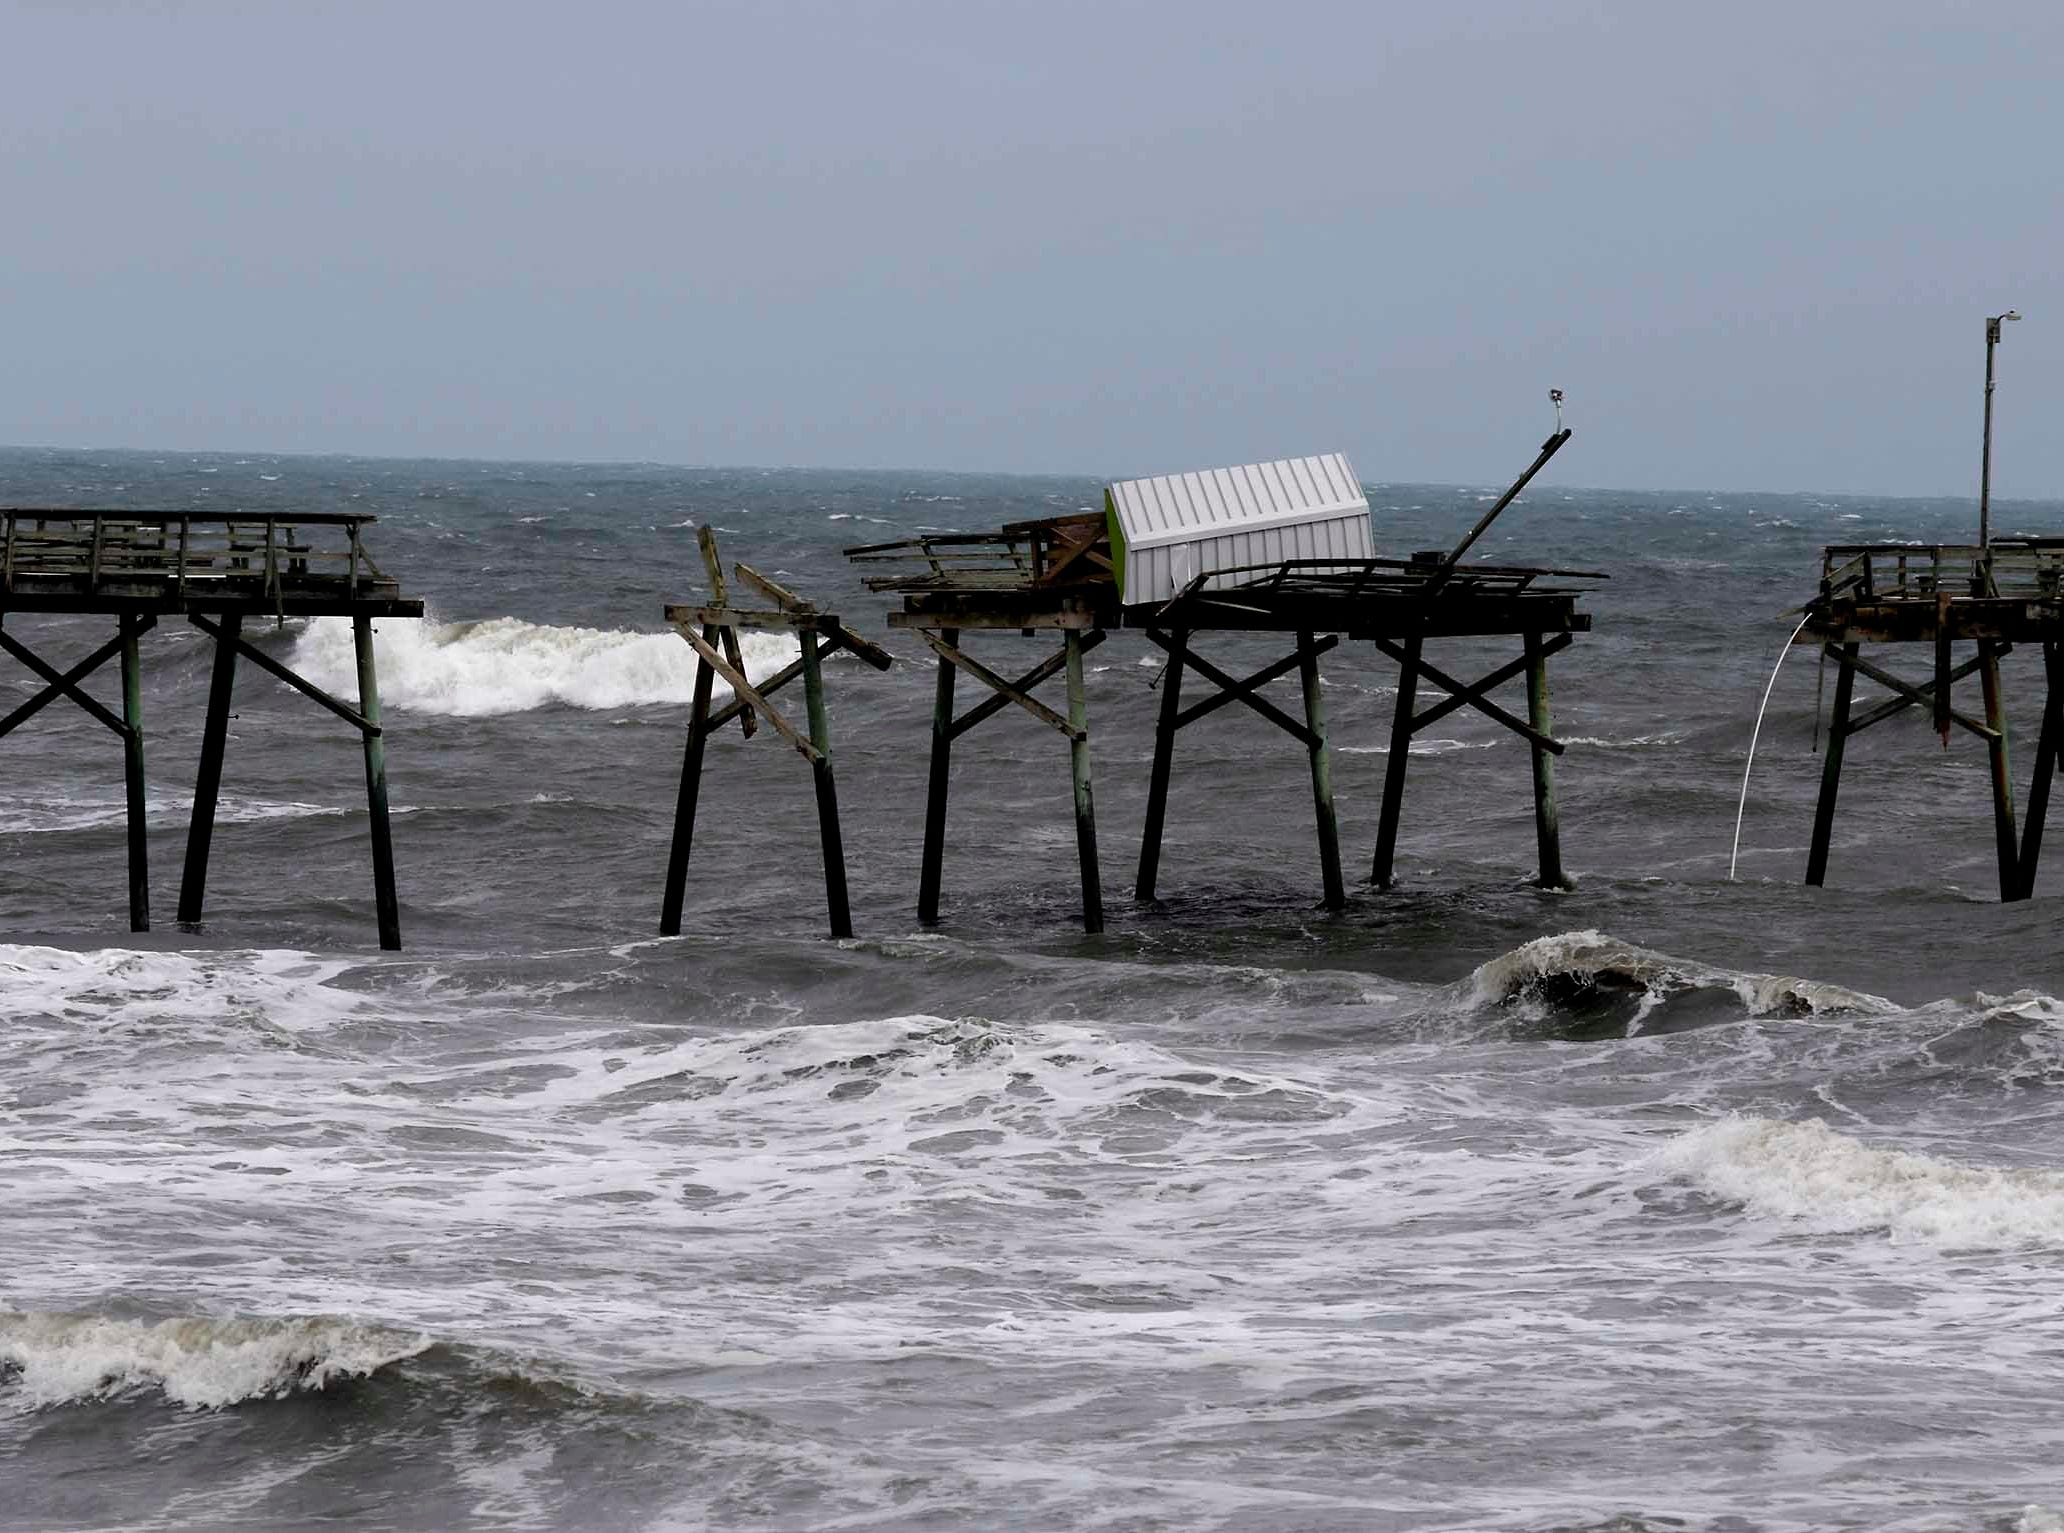 The damaged Bogue Inlet Fishing Pier after Hurricane Florence hit Emerald Isle N.C.,Sunday, Sept. 16, 2018.